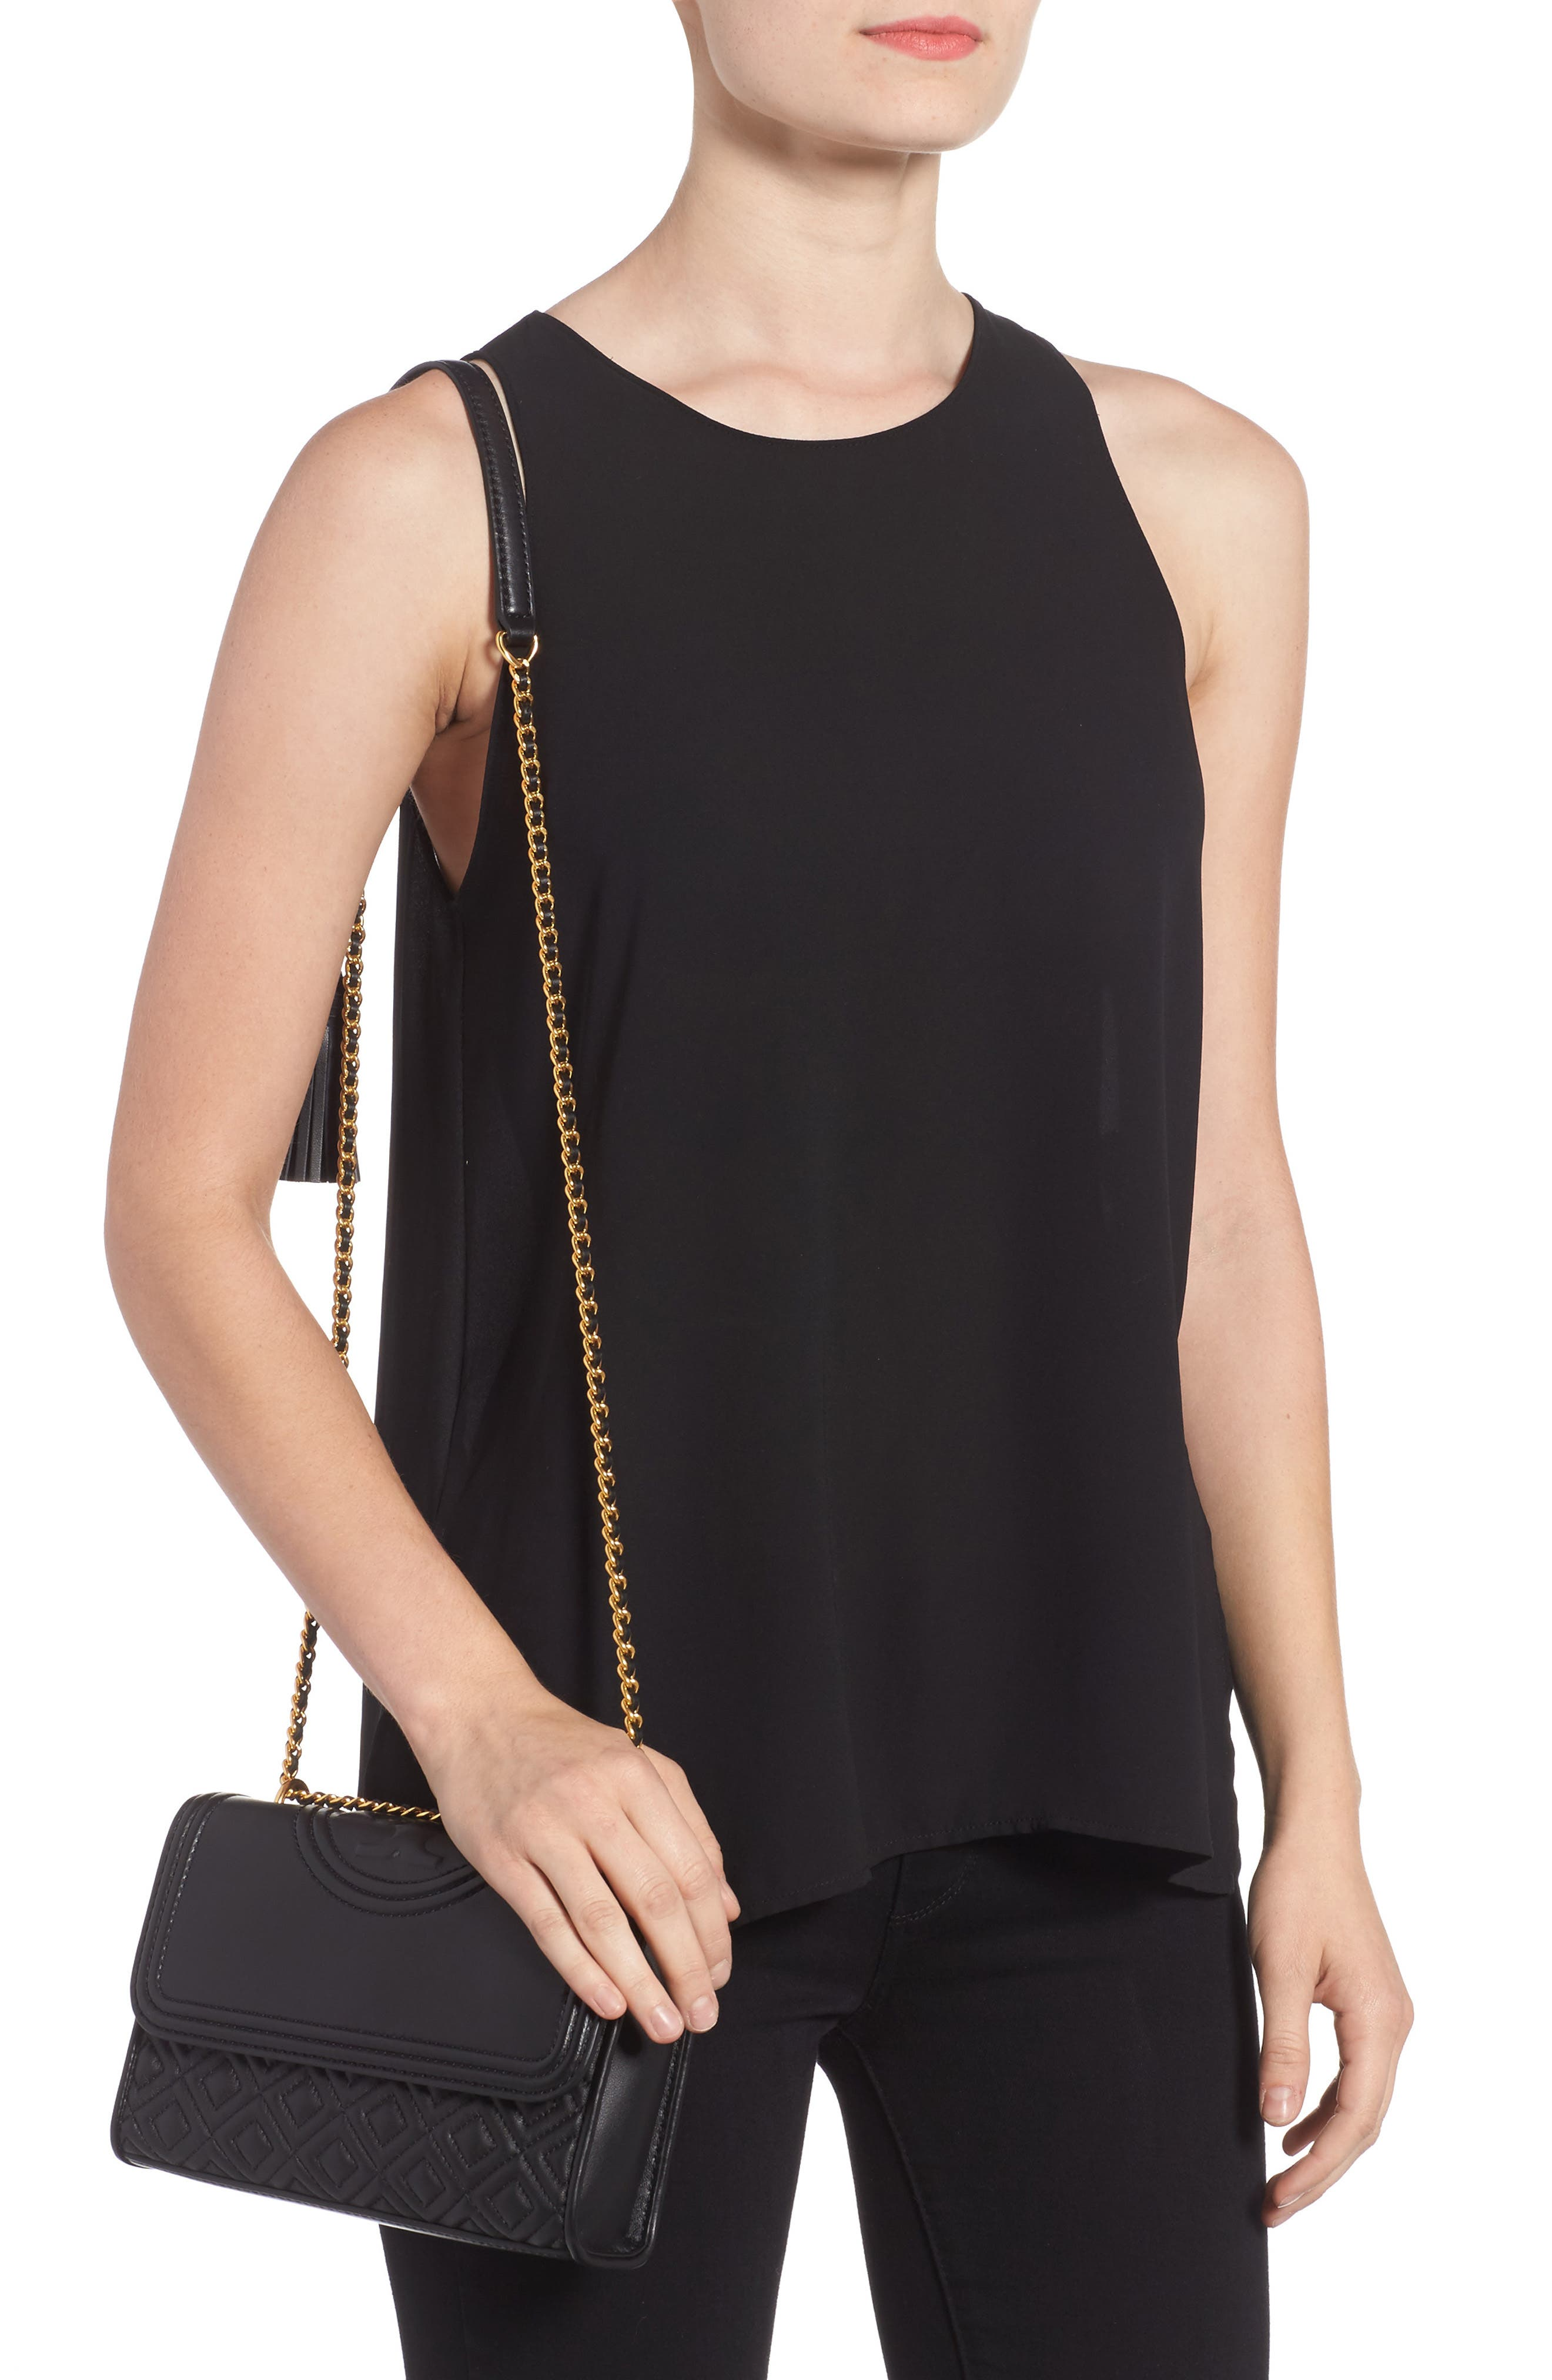 TORY BURCH, Small Fleming Leather Convertible Shoulder Bag, Alternate thumbnail 2, color, BLACK